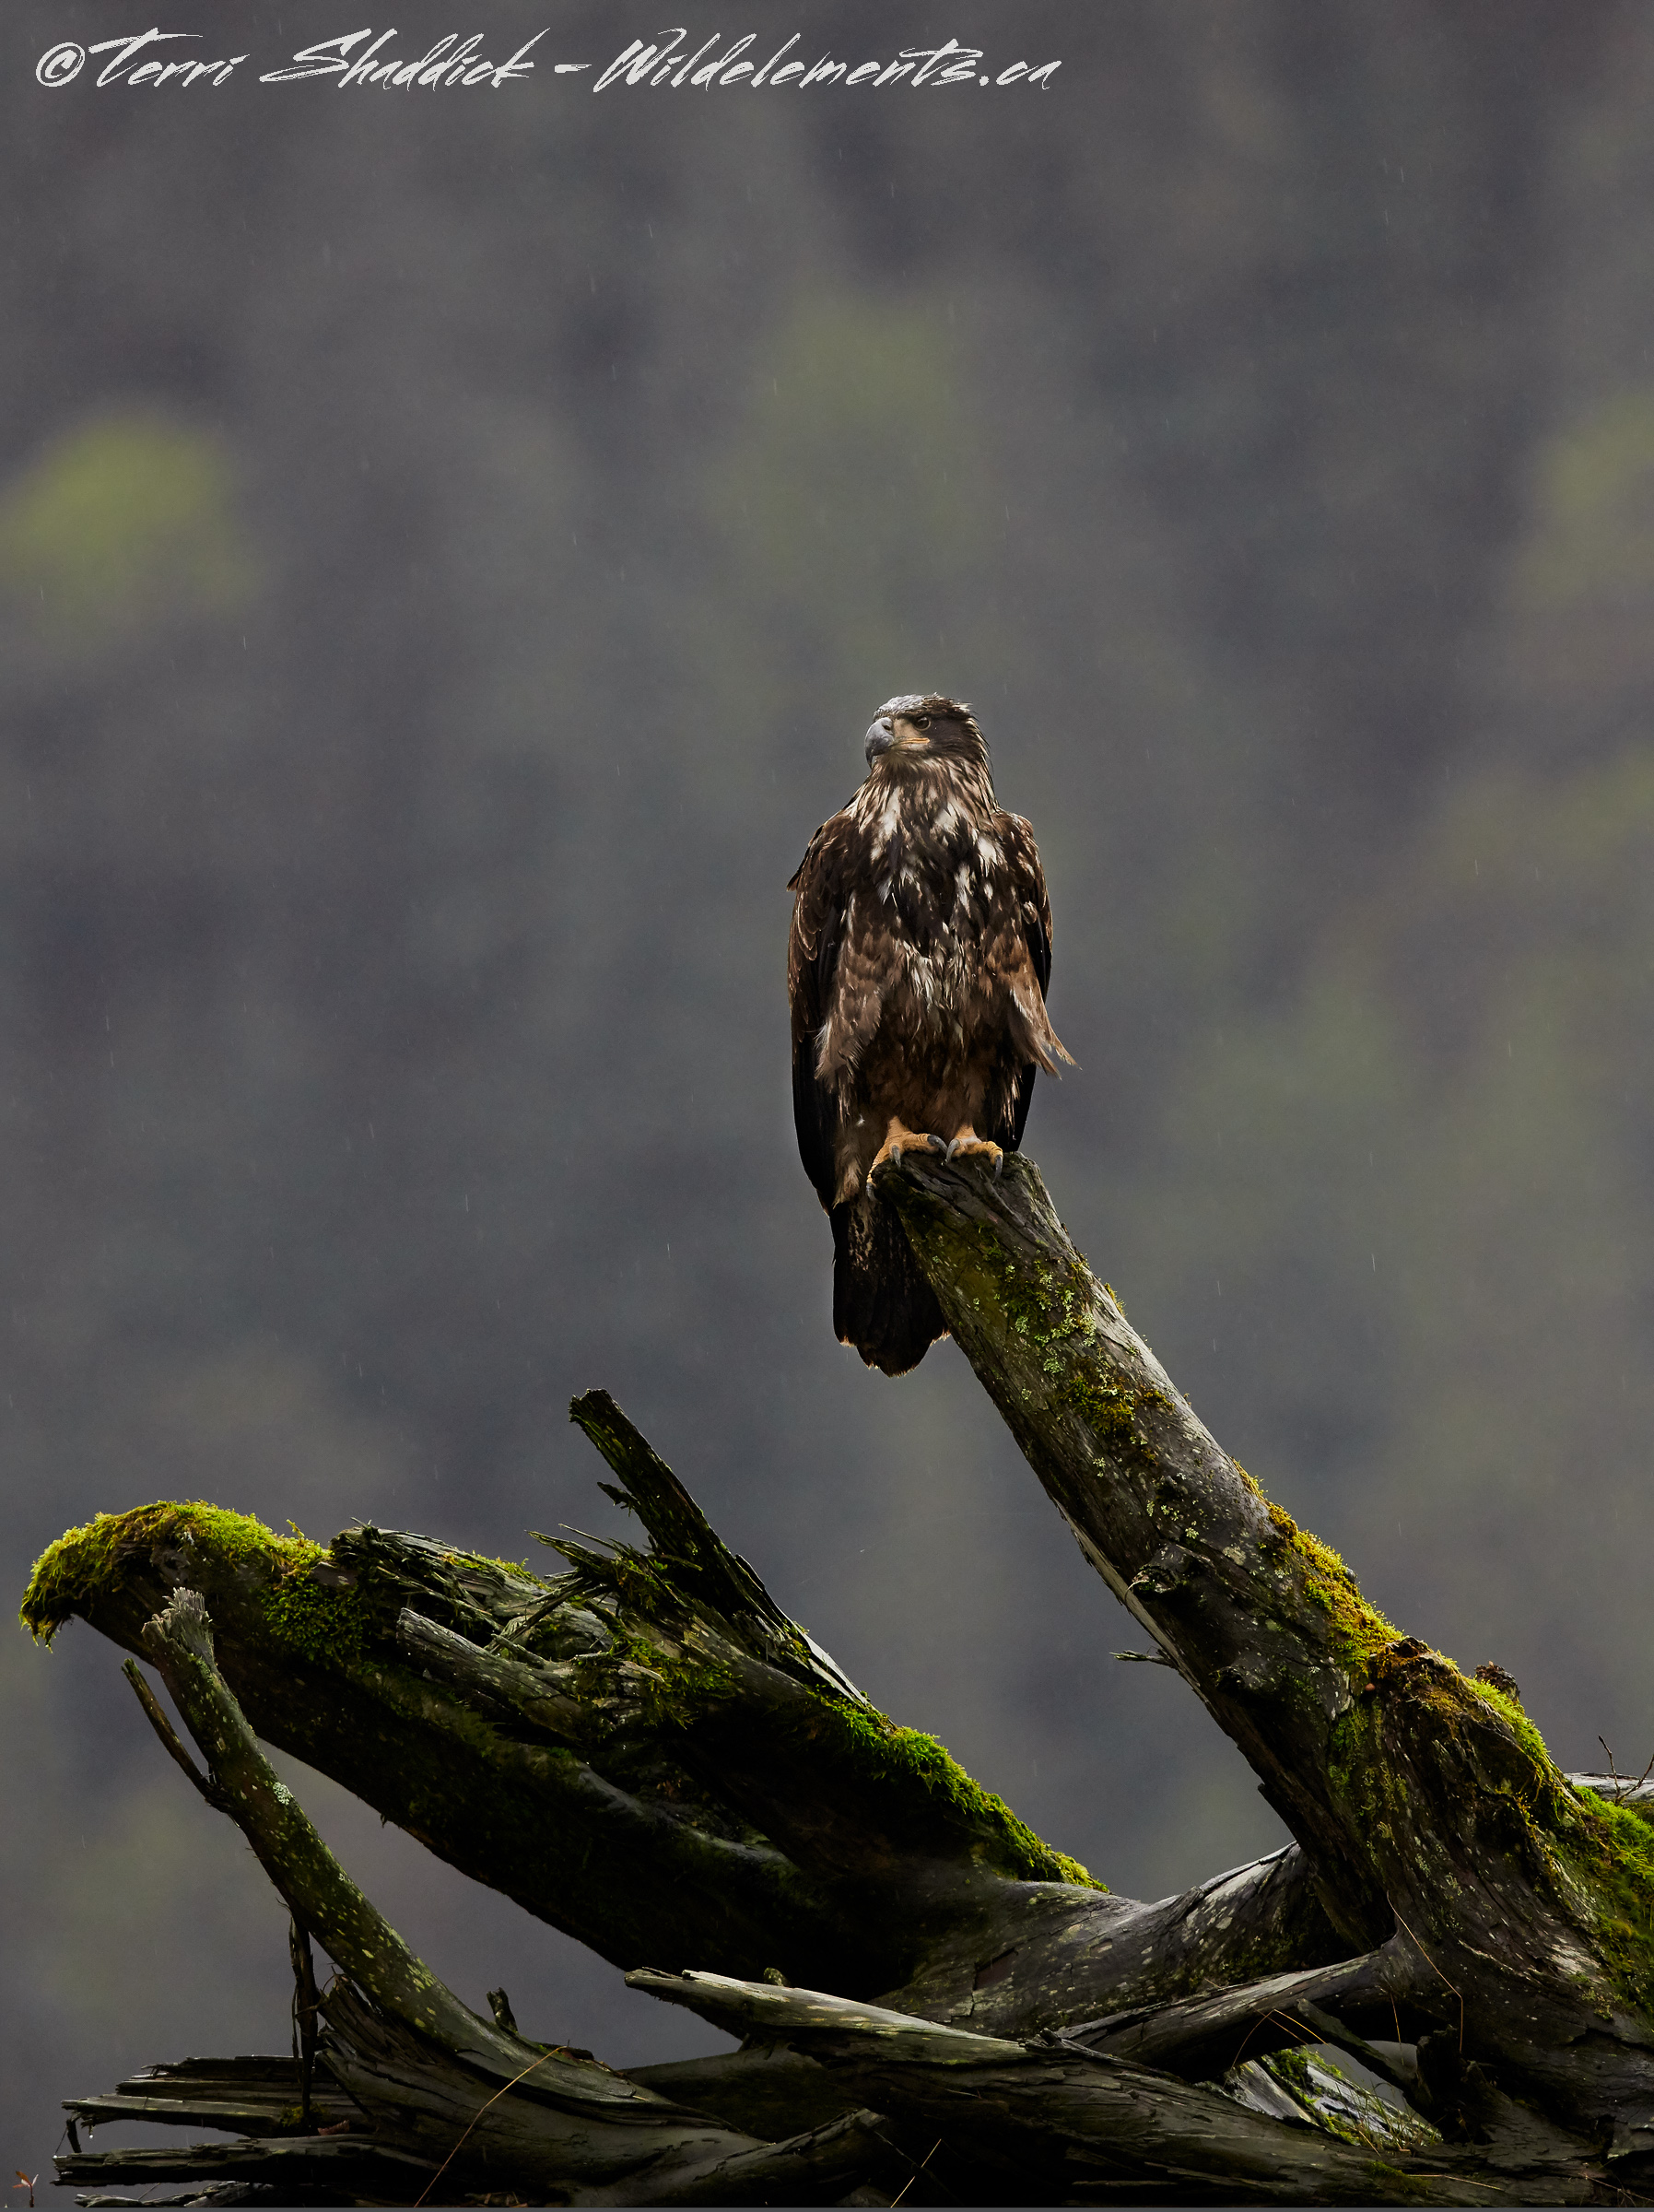 Bald Eagle perched on stump